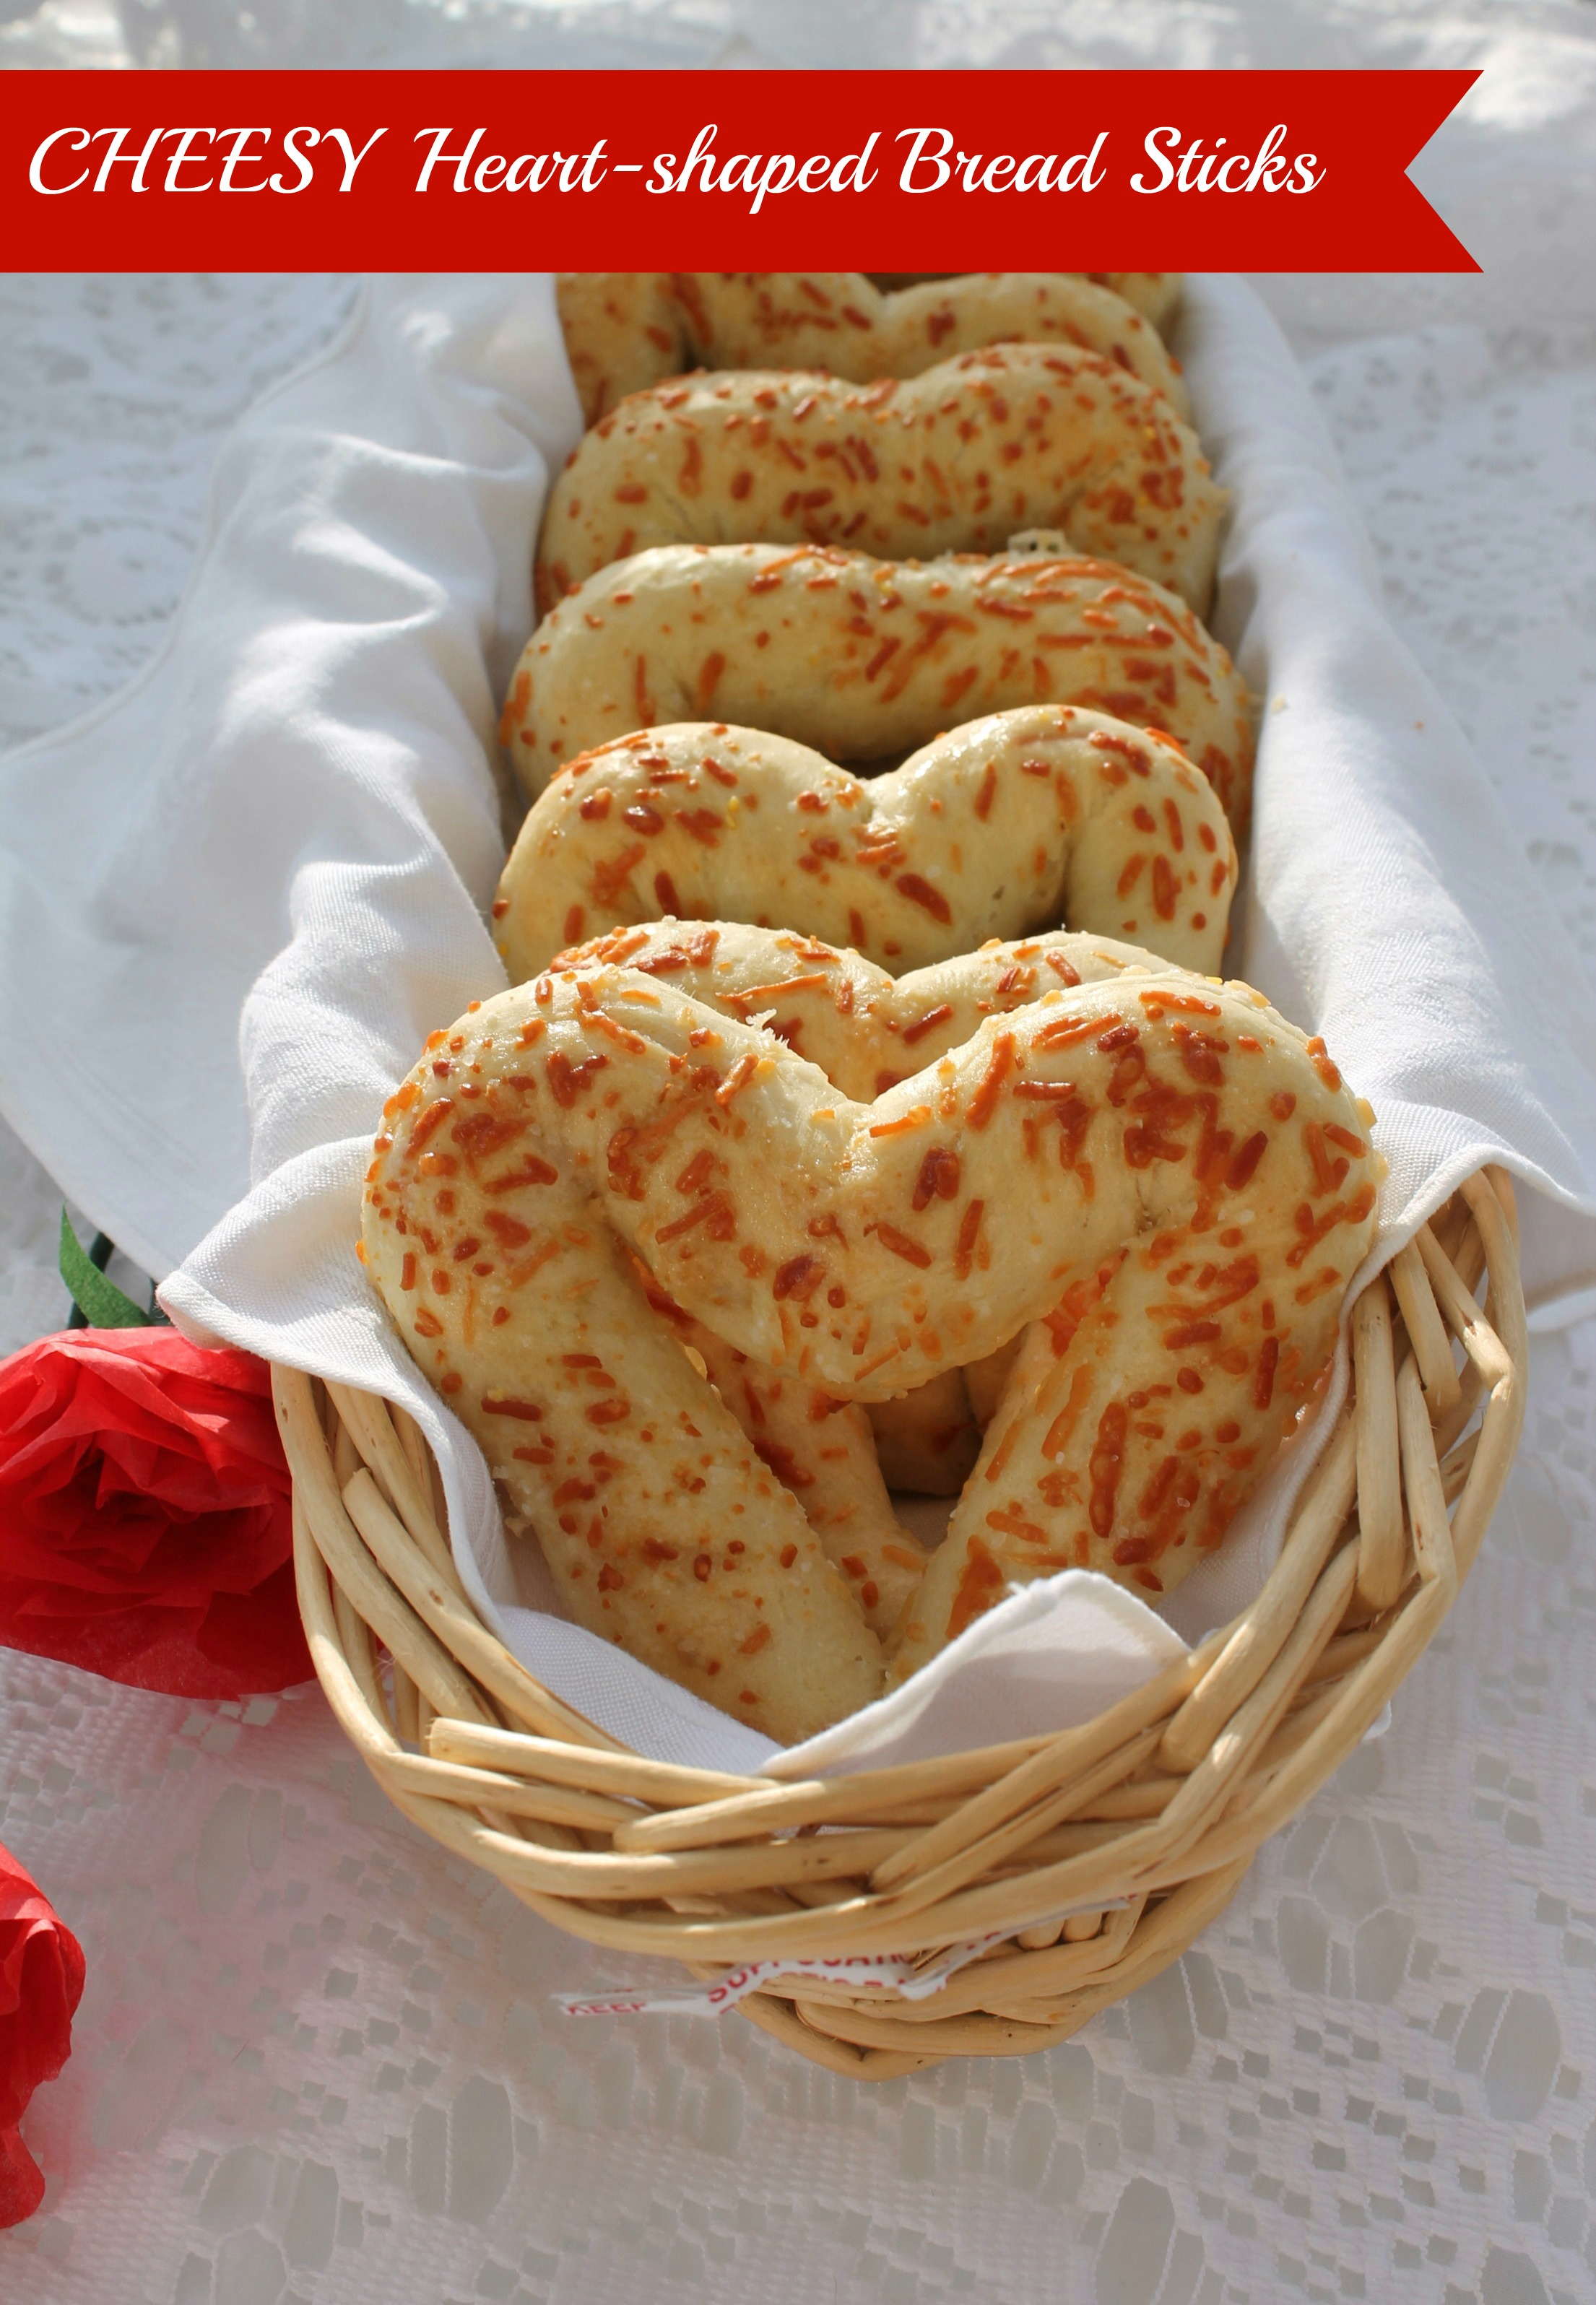 ... cheesy heart-shaped bread sticks will make it a special meal indeed